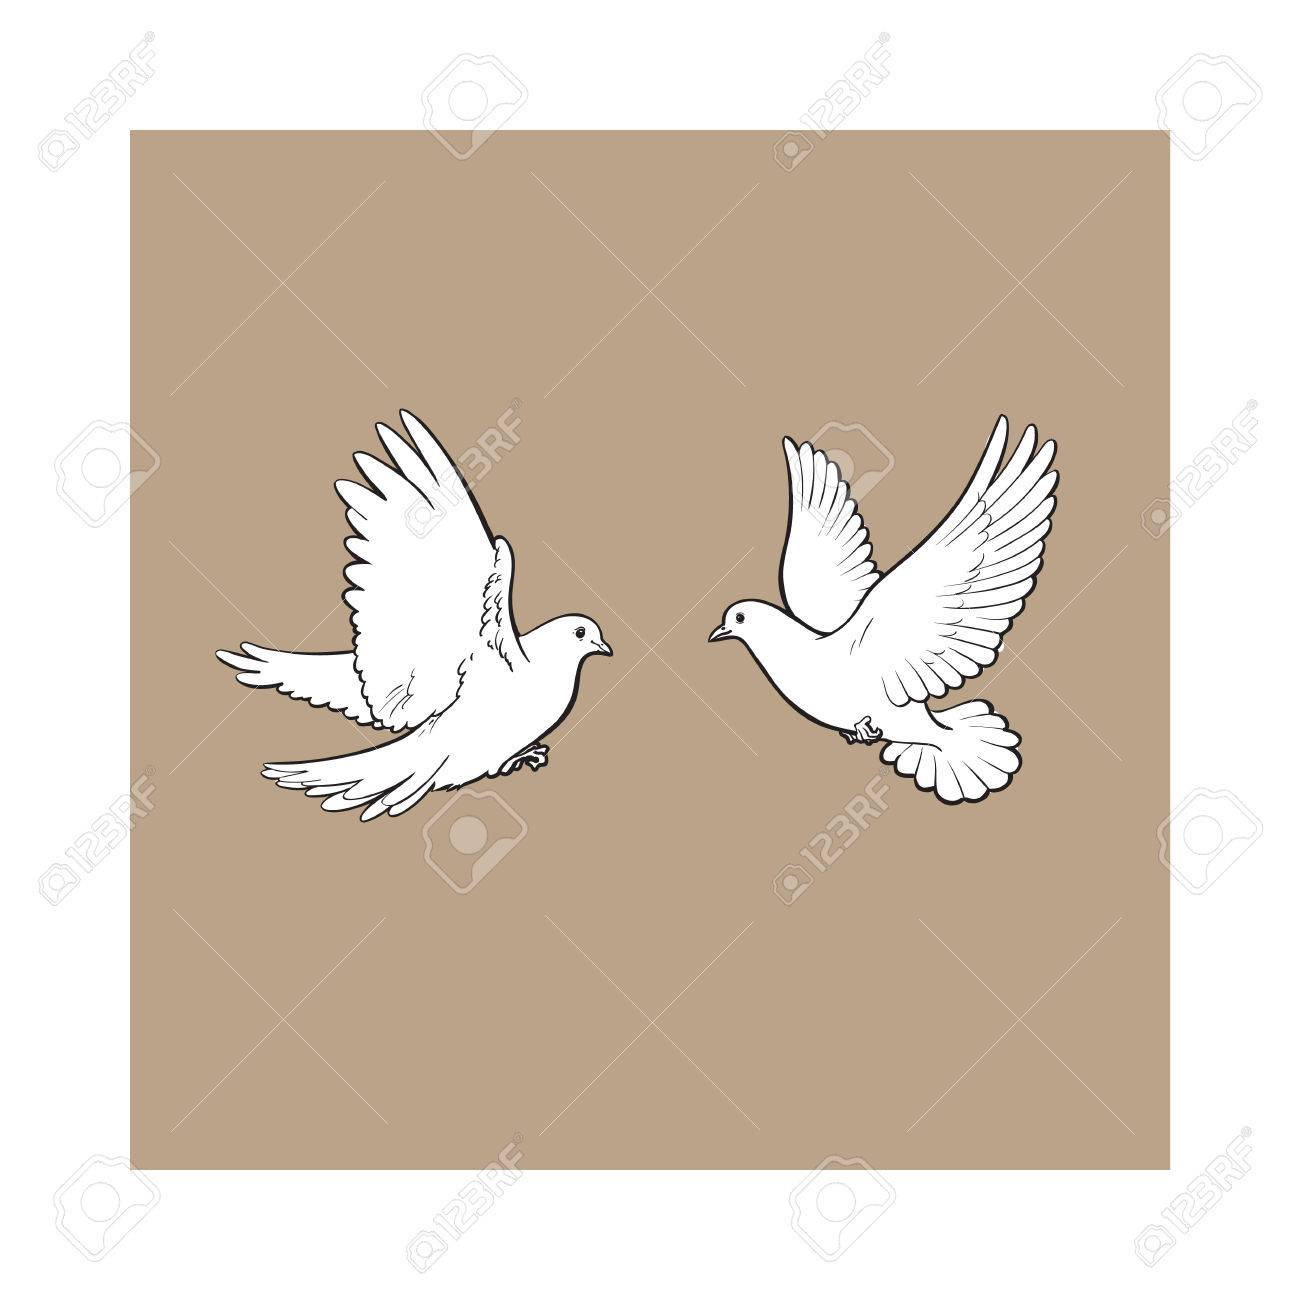 Two Free Flying White Doves Sketch Vector Illustration Isolated